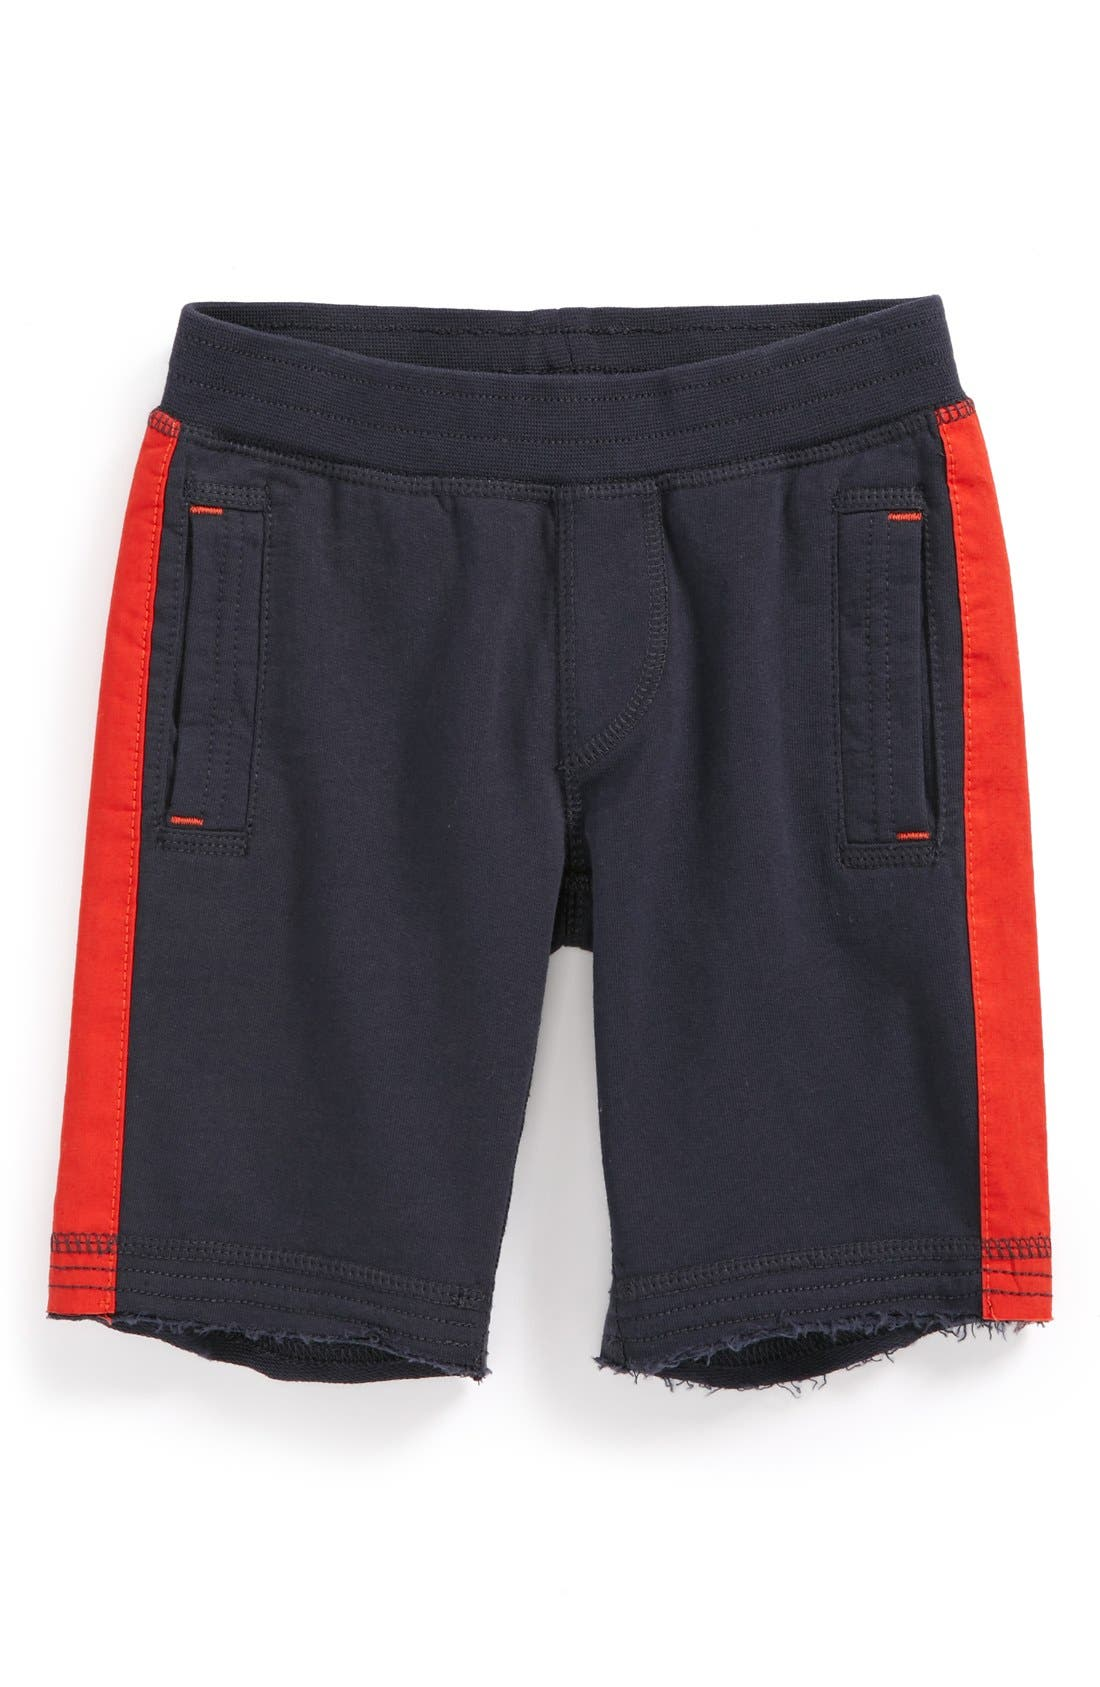 Main Image - Tea Collection Side Stripe Gym Shorts (Toddler Boys)